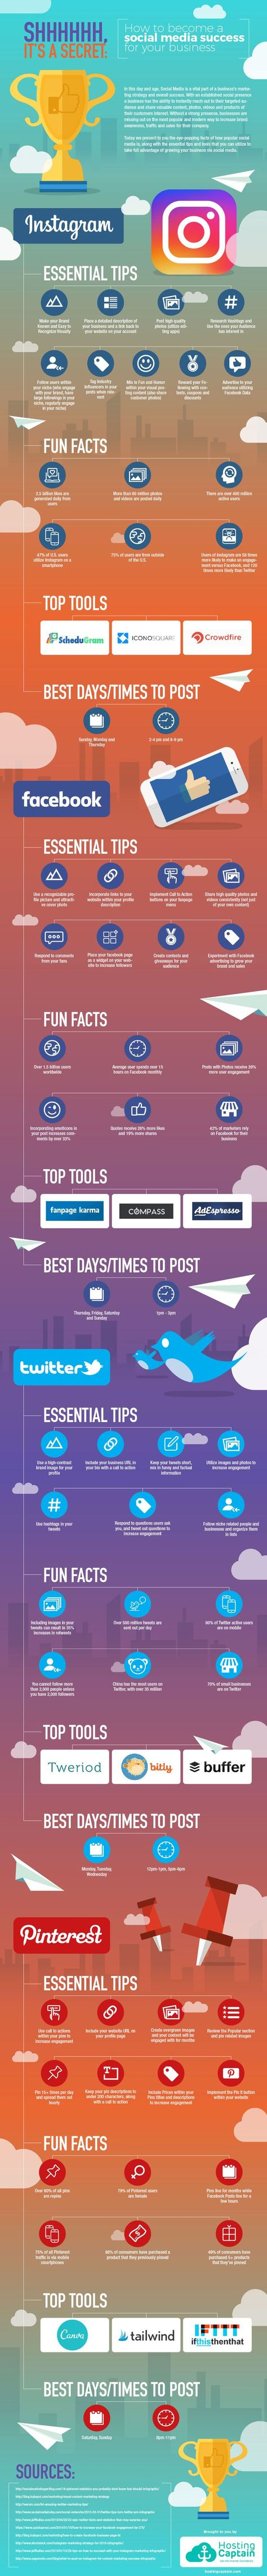 Social Media Tips, Tools and Fun Facts [Infographic]